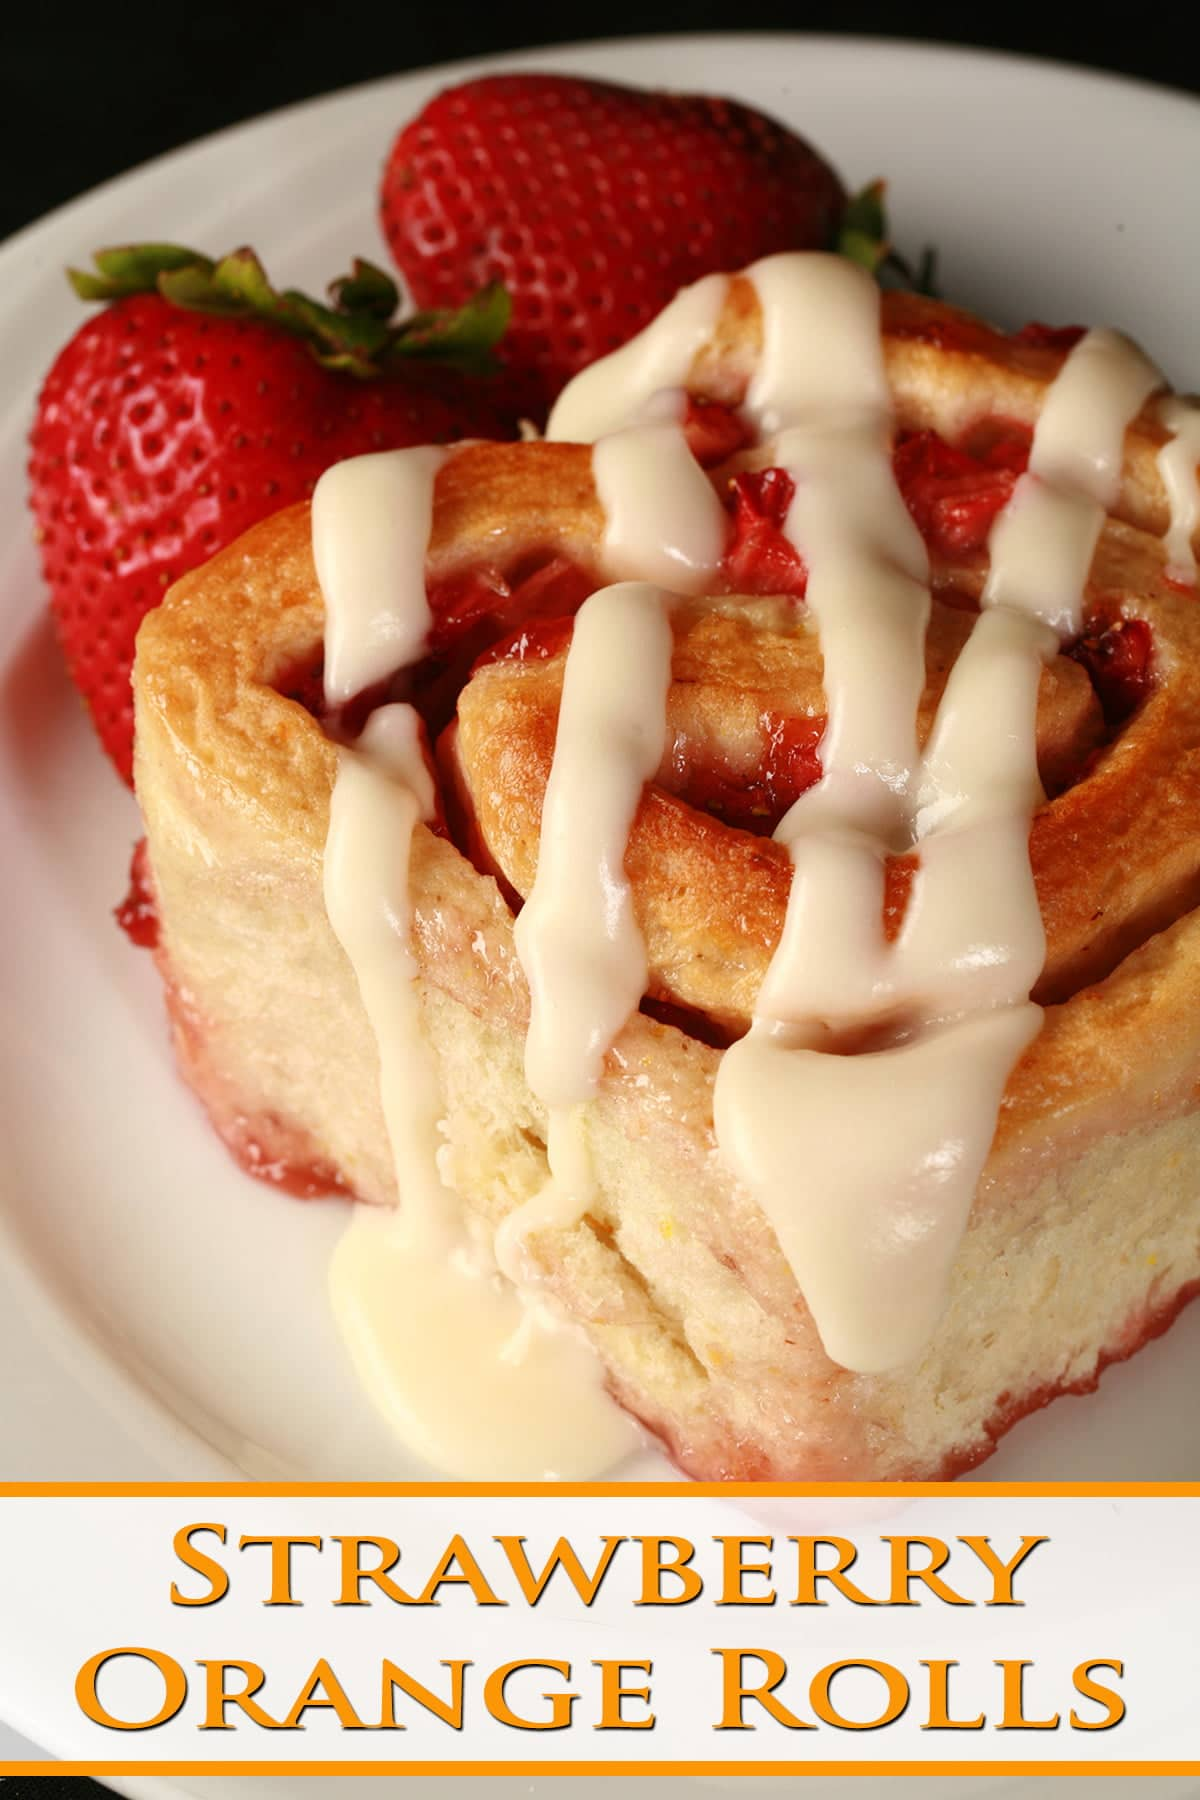 A strawberry orange roll on a white plate, with 2 fresh strawberries next to it